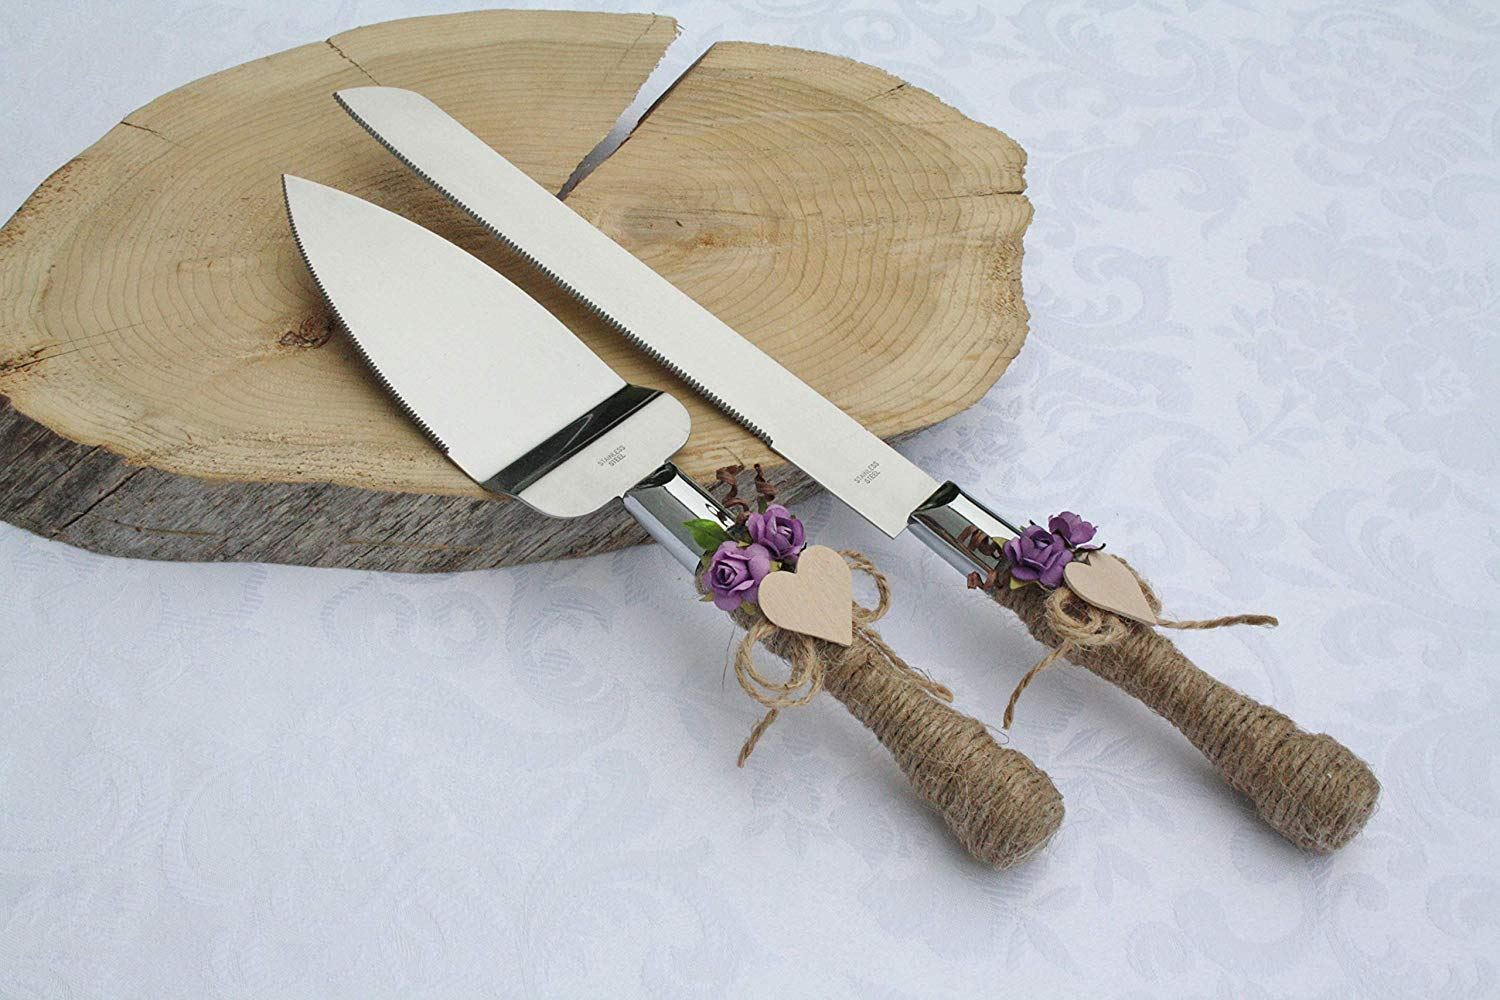 Rustic chic wedding cake cutter, Lilac flowers cake cutter, Wedding cake server set, Country wedding cake cutting, Cake server & cake knife set